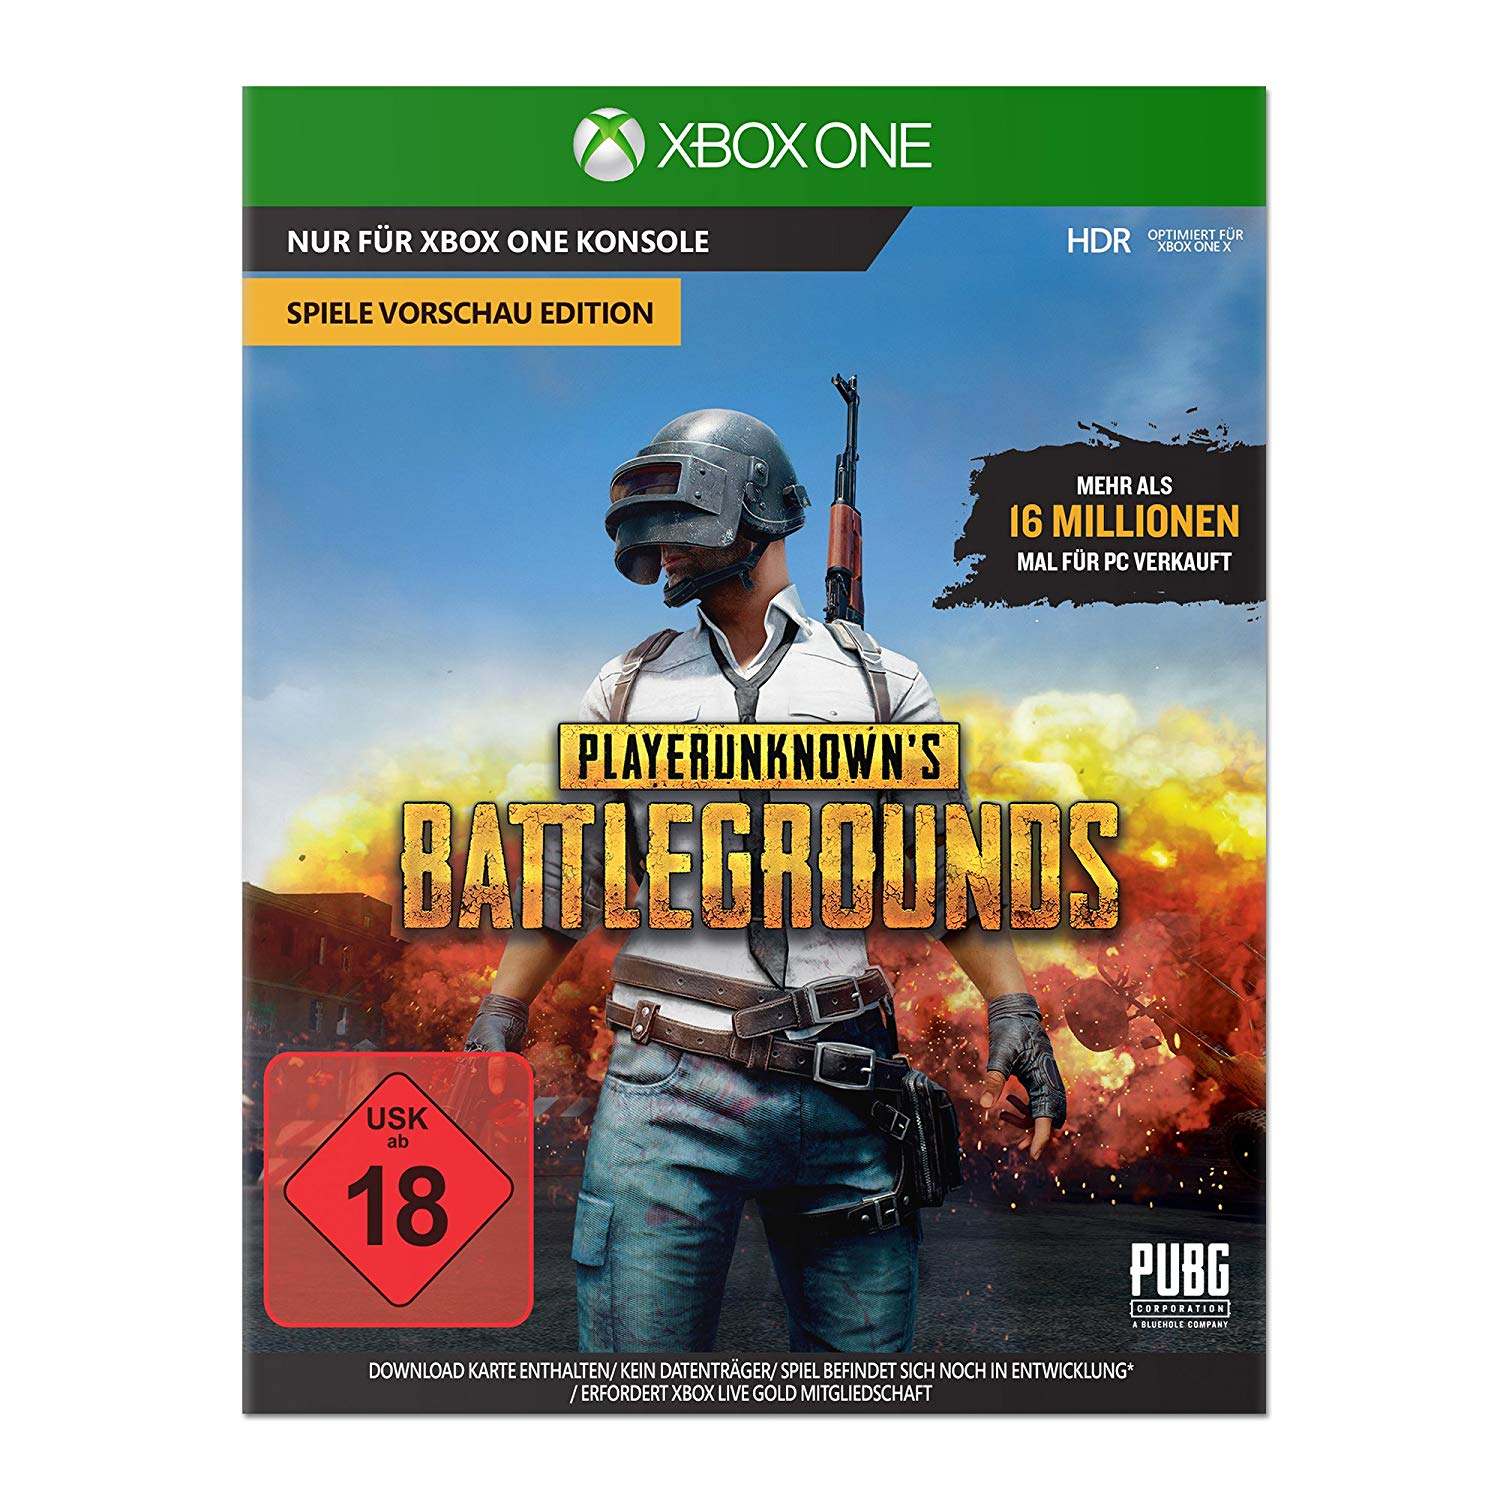 PlayerUnknown´s Battlegrounds (PUBG) PC Xbox One